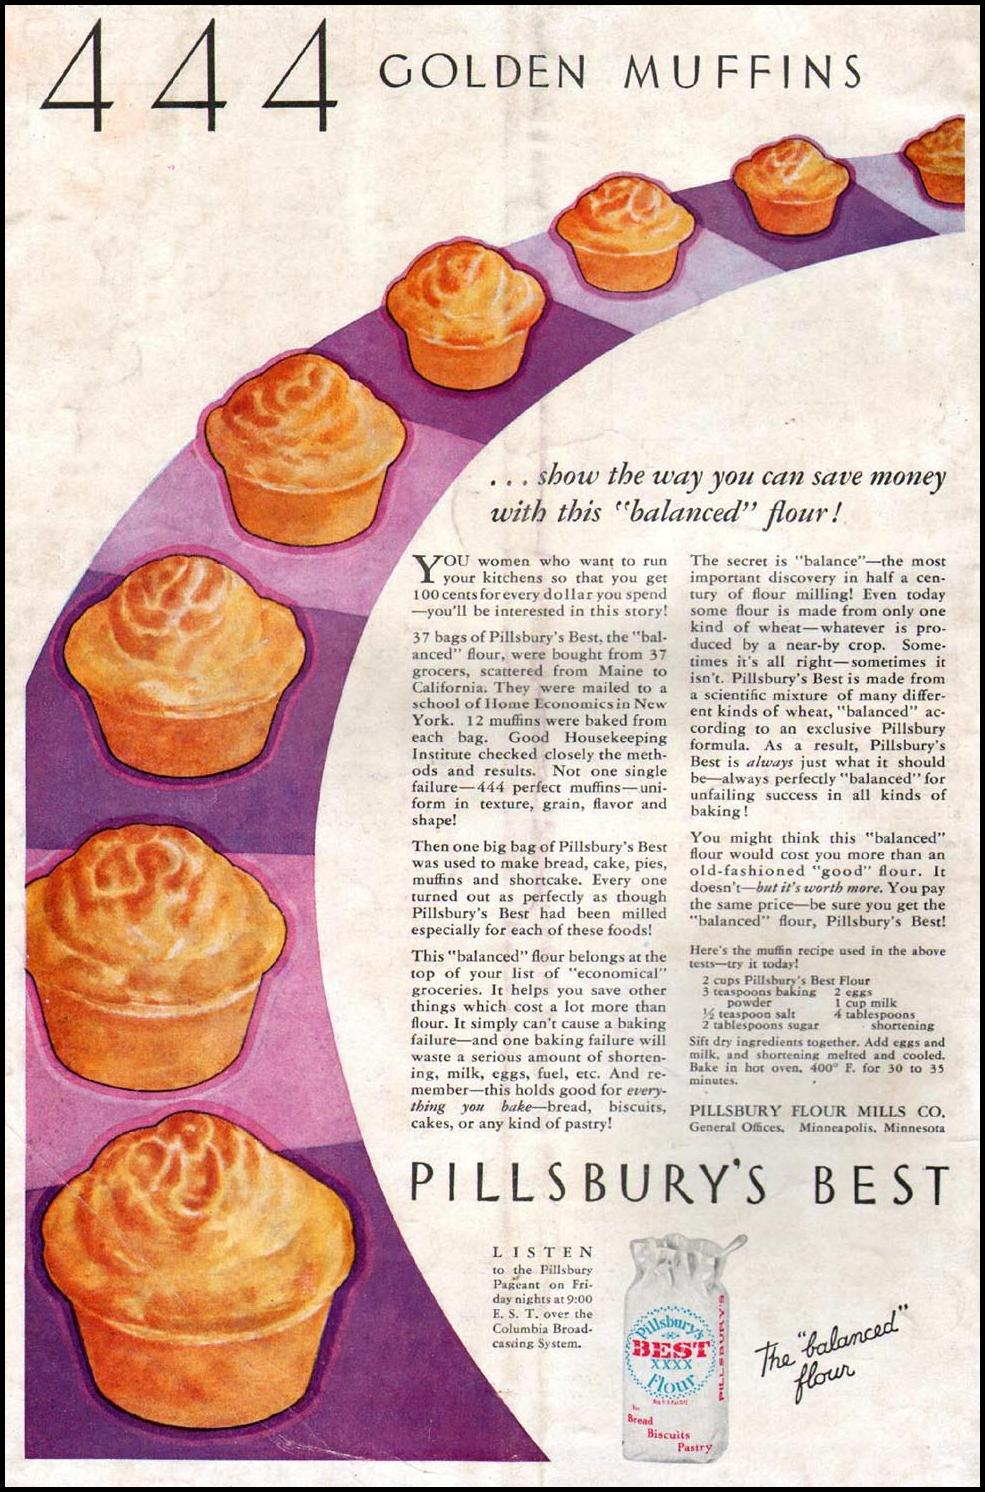 PILLSBURY FLOUR BETTER HOMES AND GARDENS 09/01/1931 BACK COVER